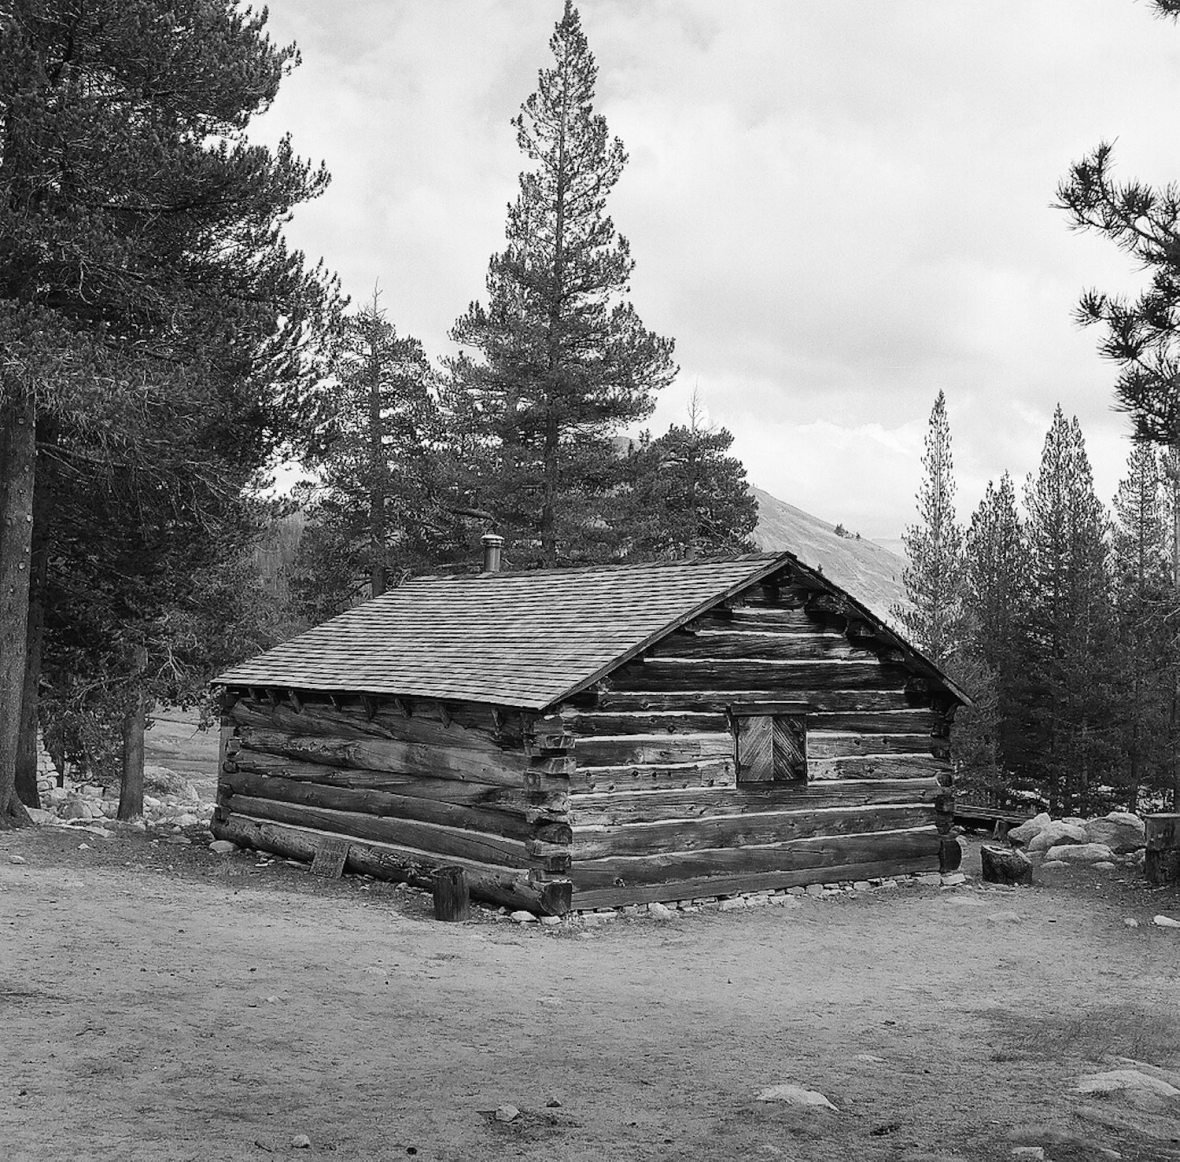 Medium format 120 mm monochrome film photography cabin in Tuolumne Meadows Yosemite National Park